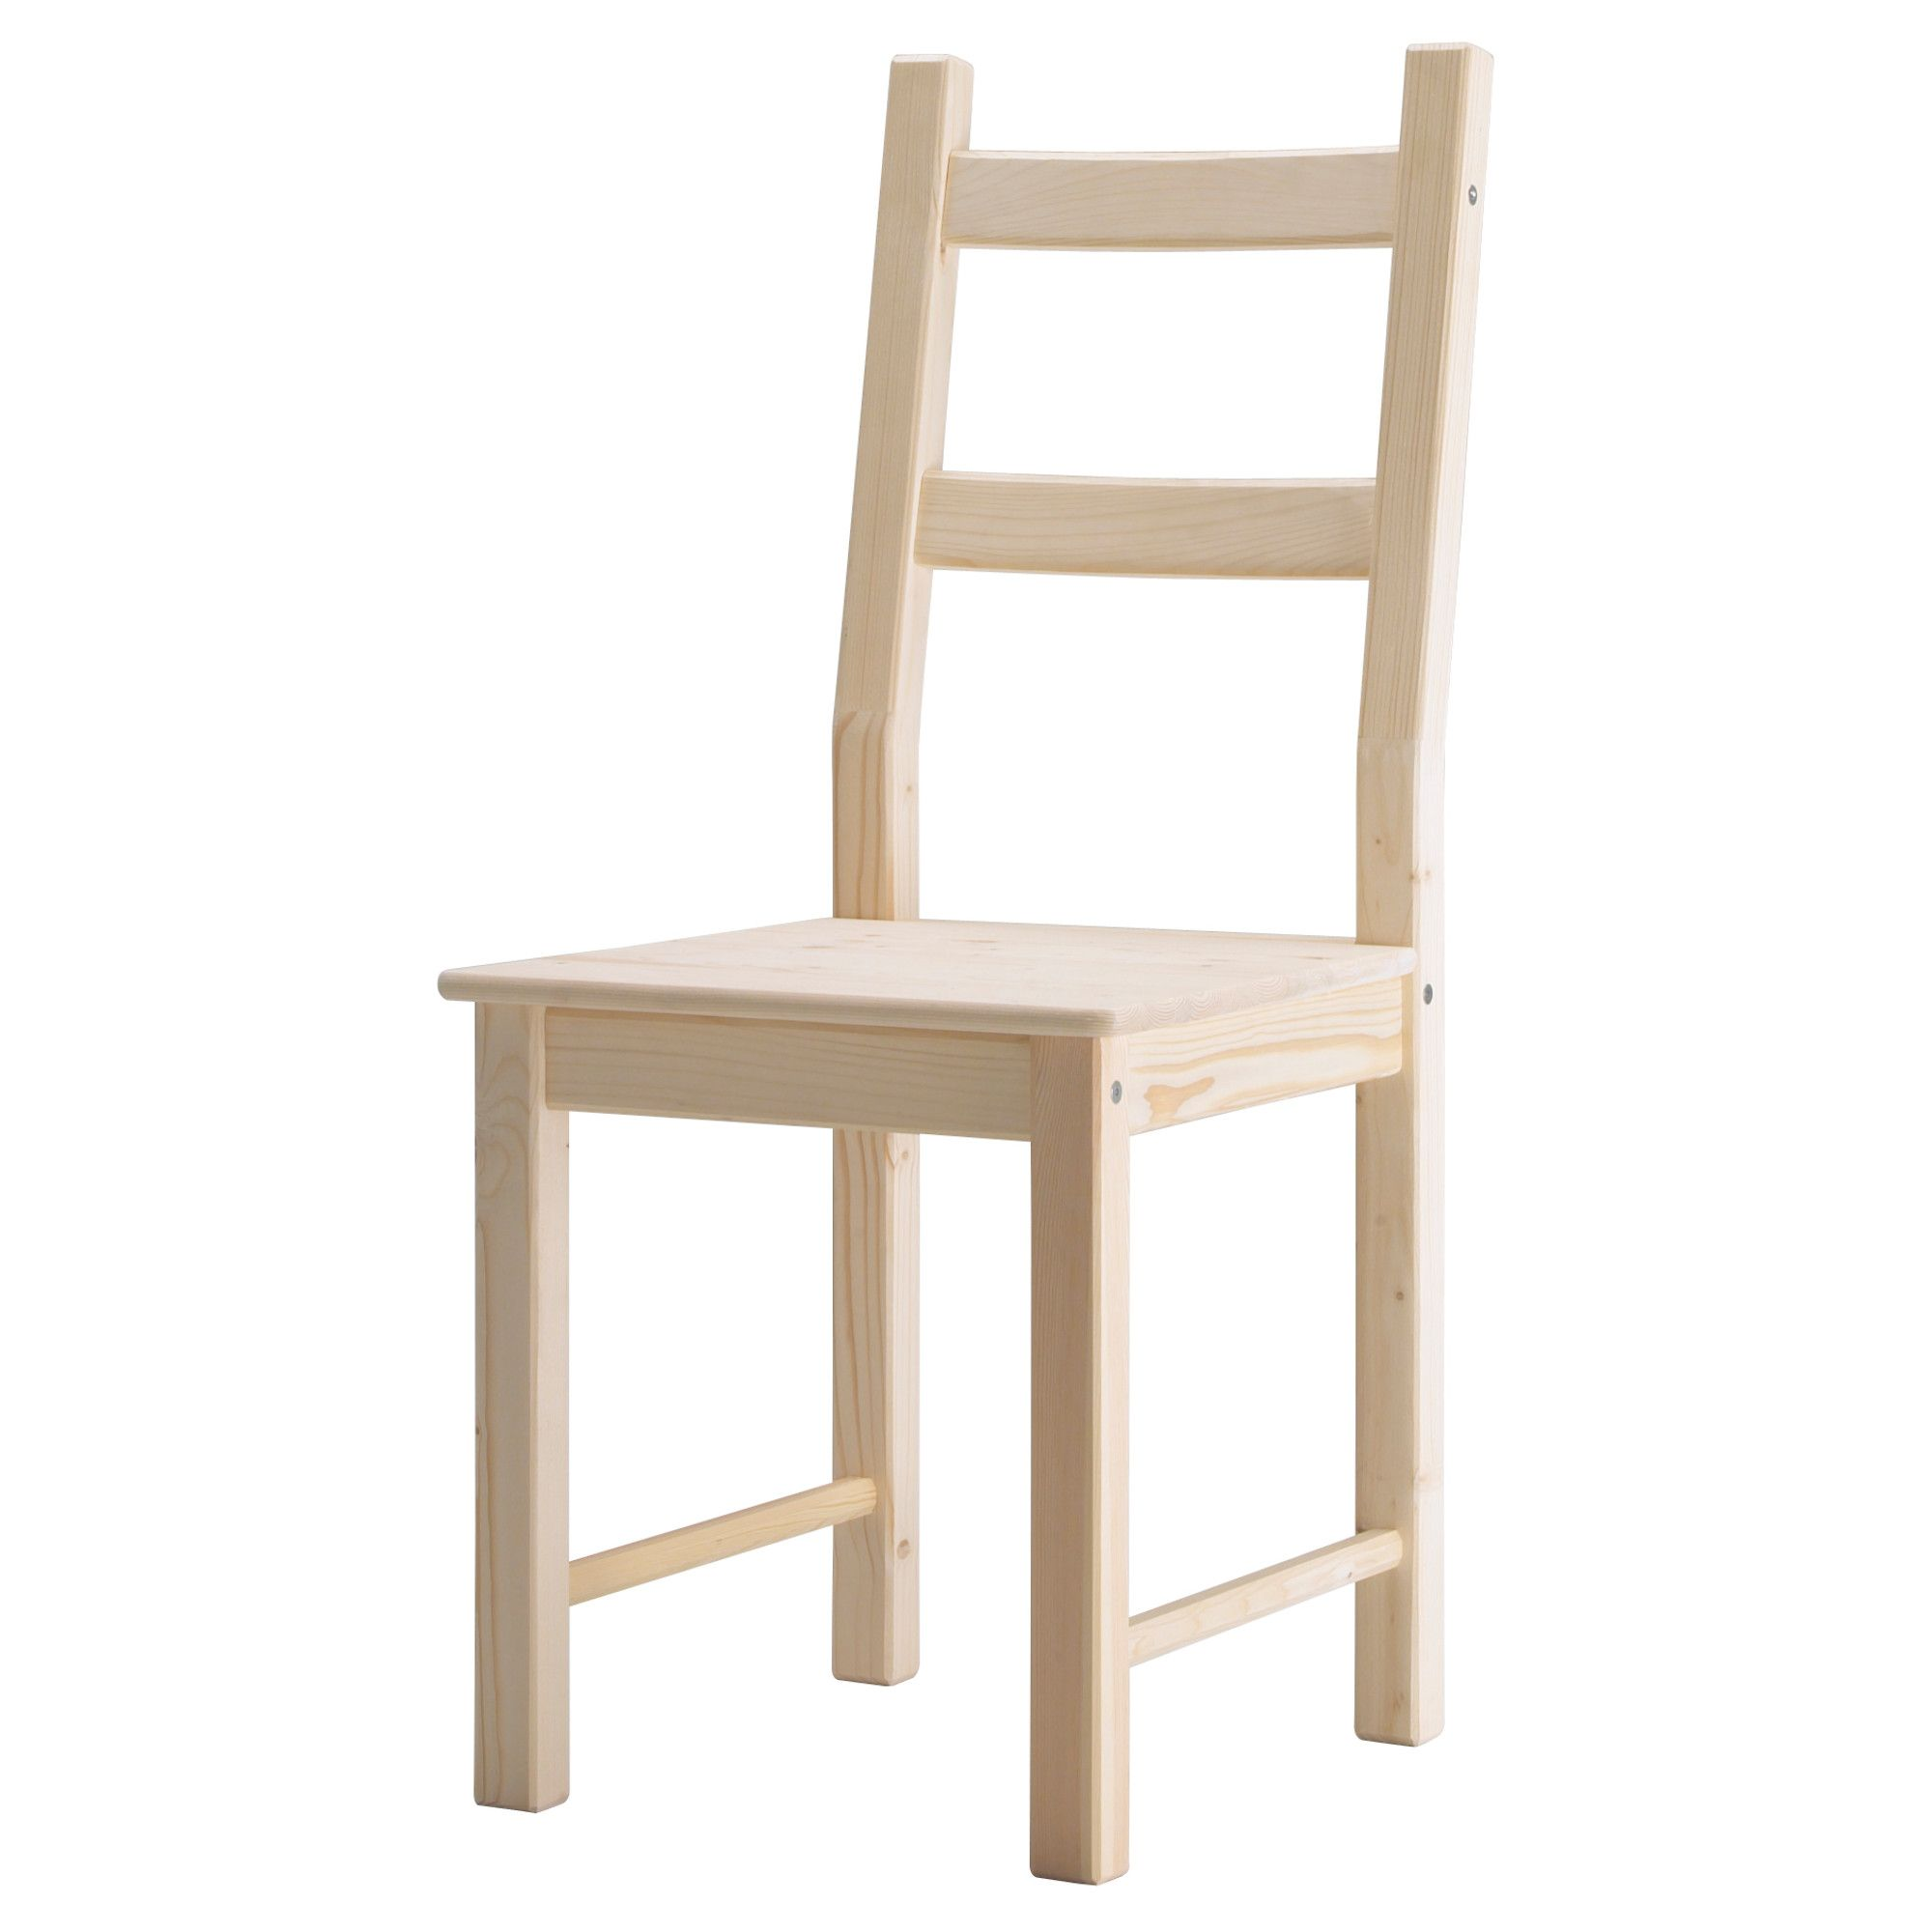 IVAR Chair   IKEA $24.99 Each Available Online. Need To Paint To Match  Table Or Stain And Seal.